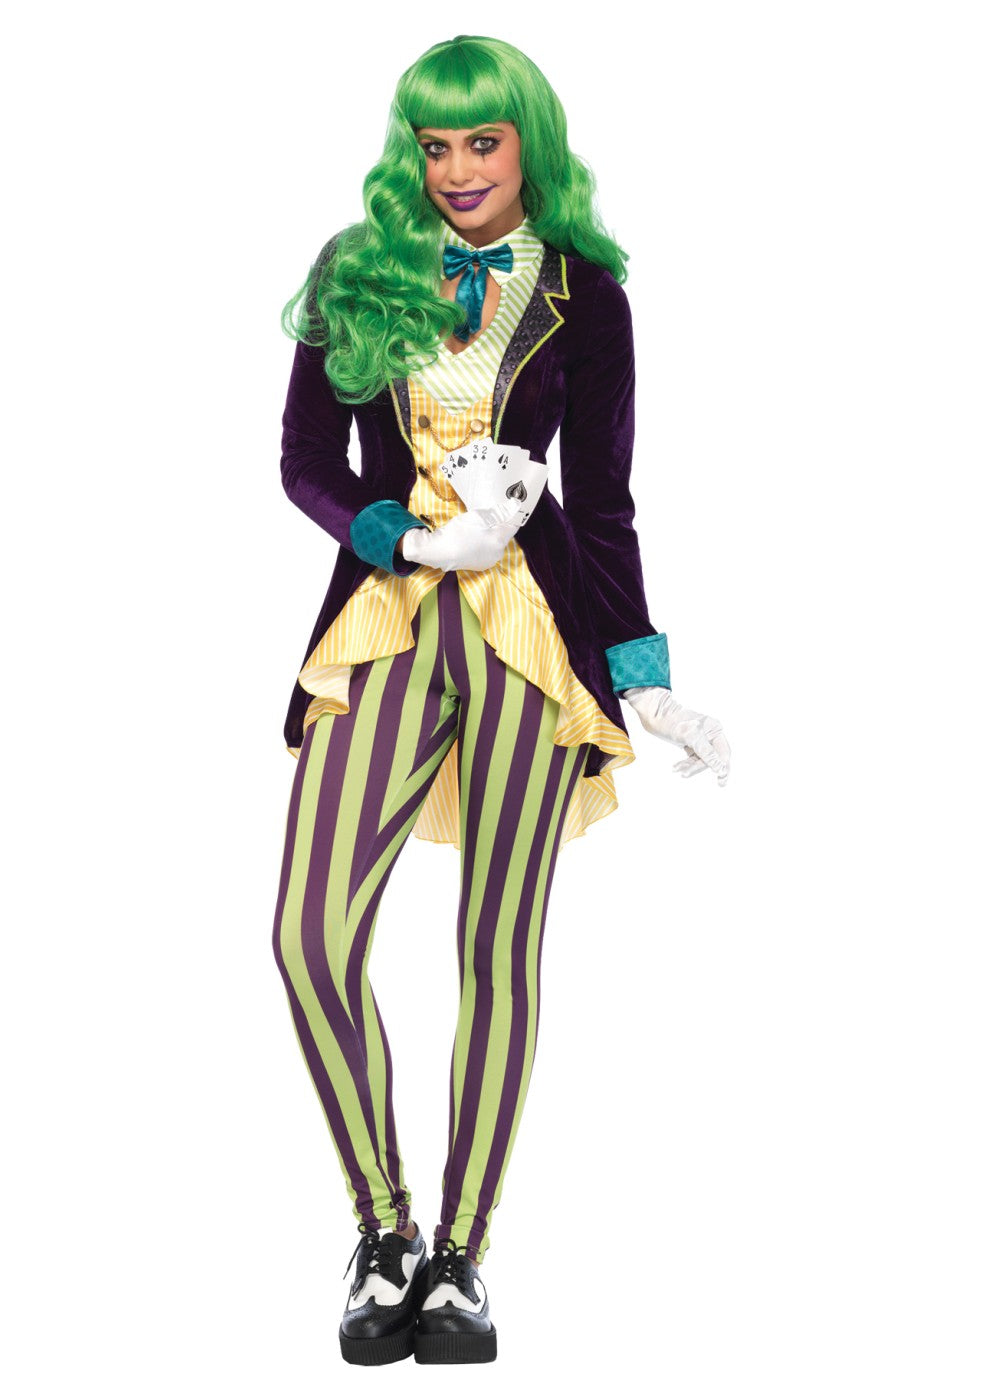 *2PC.Wicked Trickster,high/low jacket w/bow tie,striped leggingsCostumes